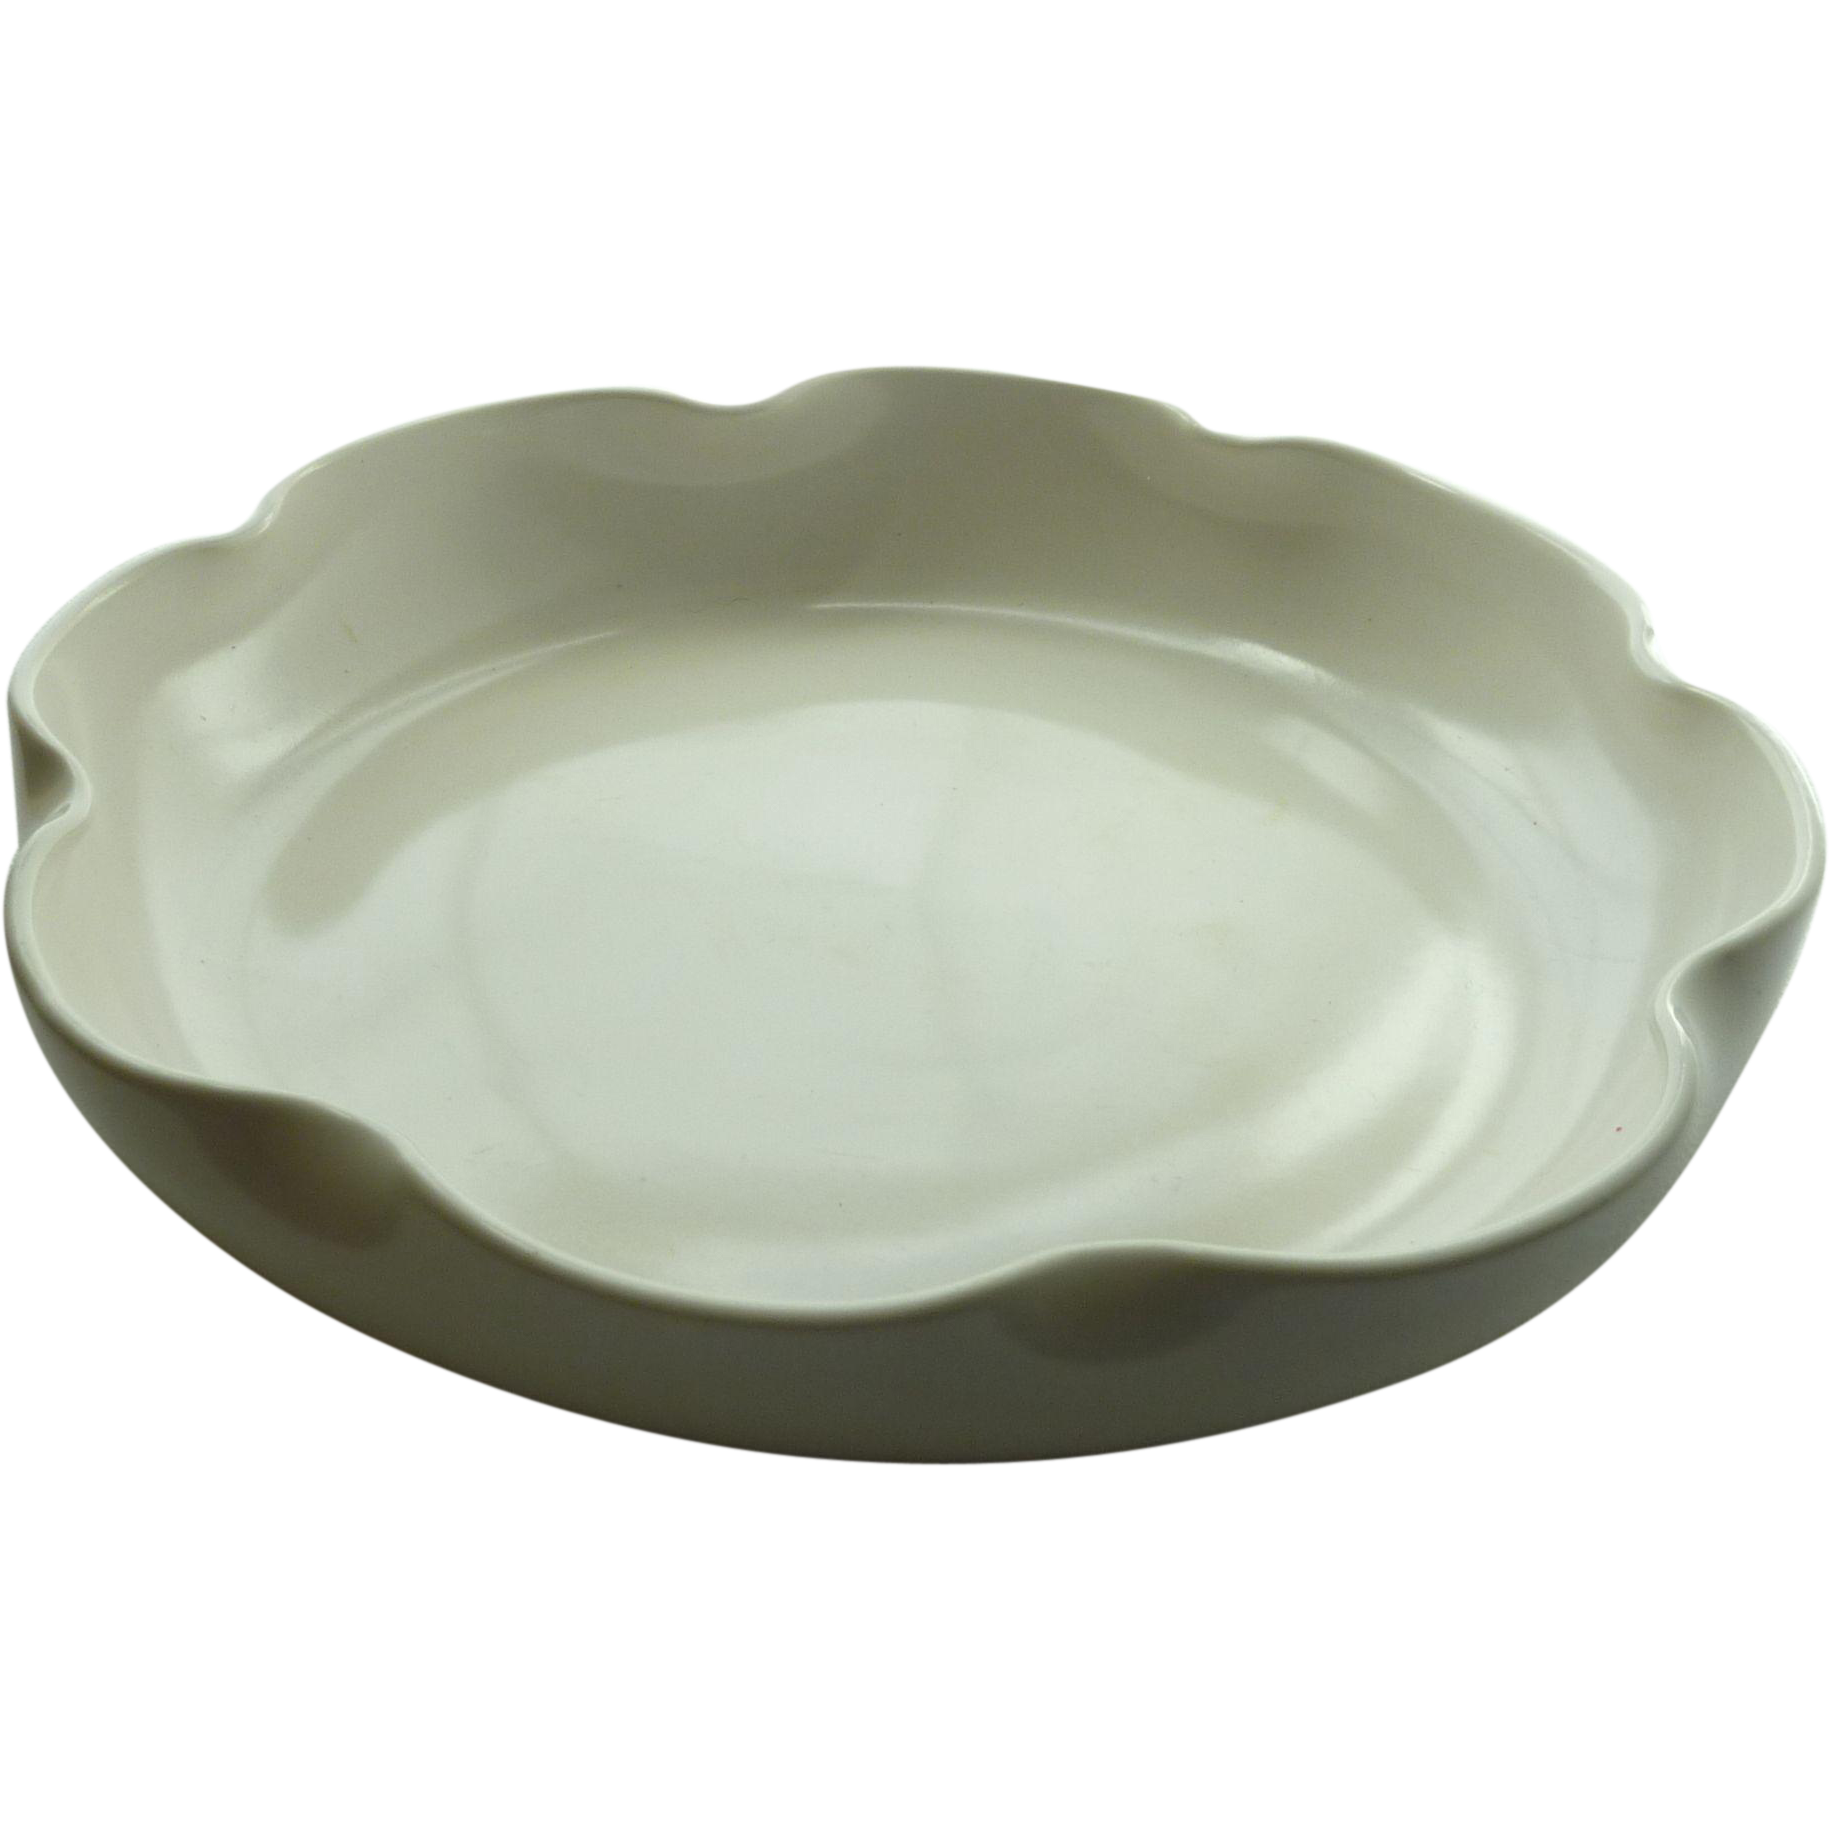 Crème White California Art Pottery Shallow Bowl S-50